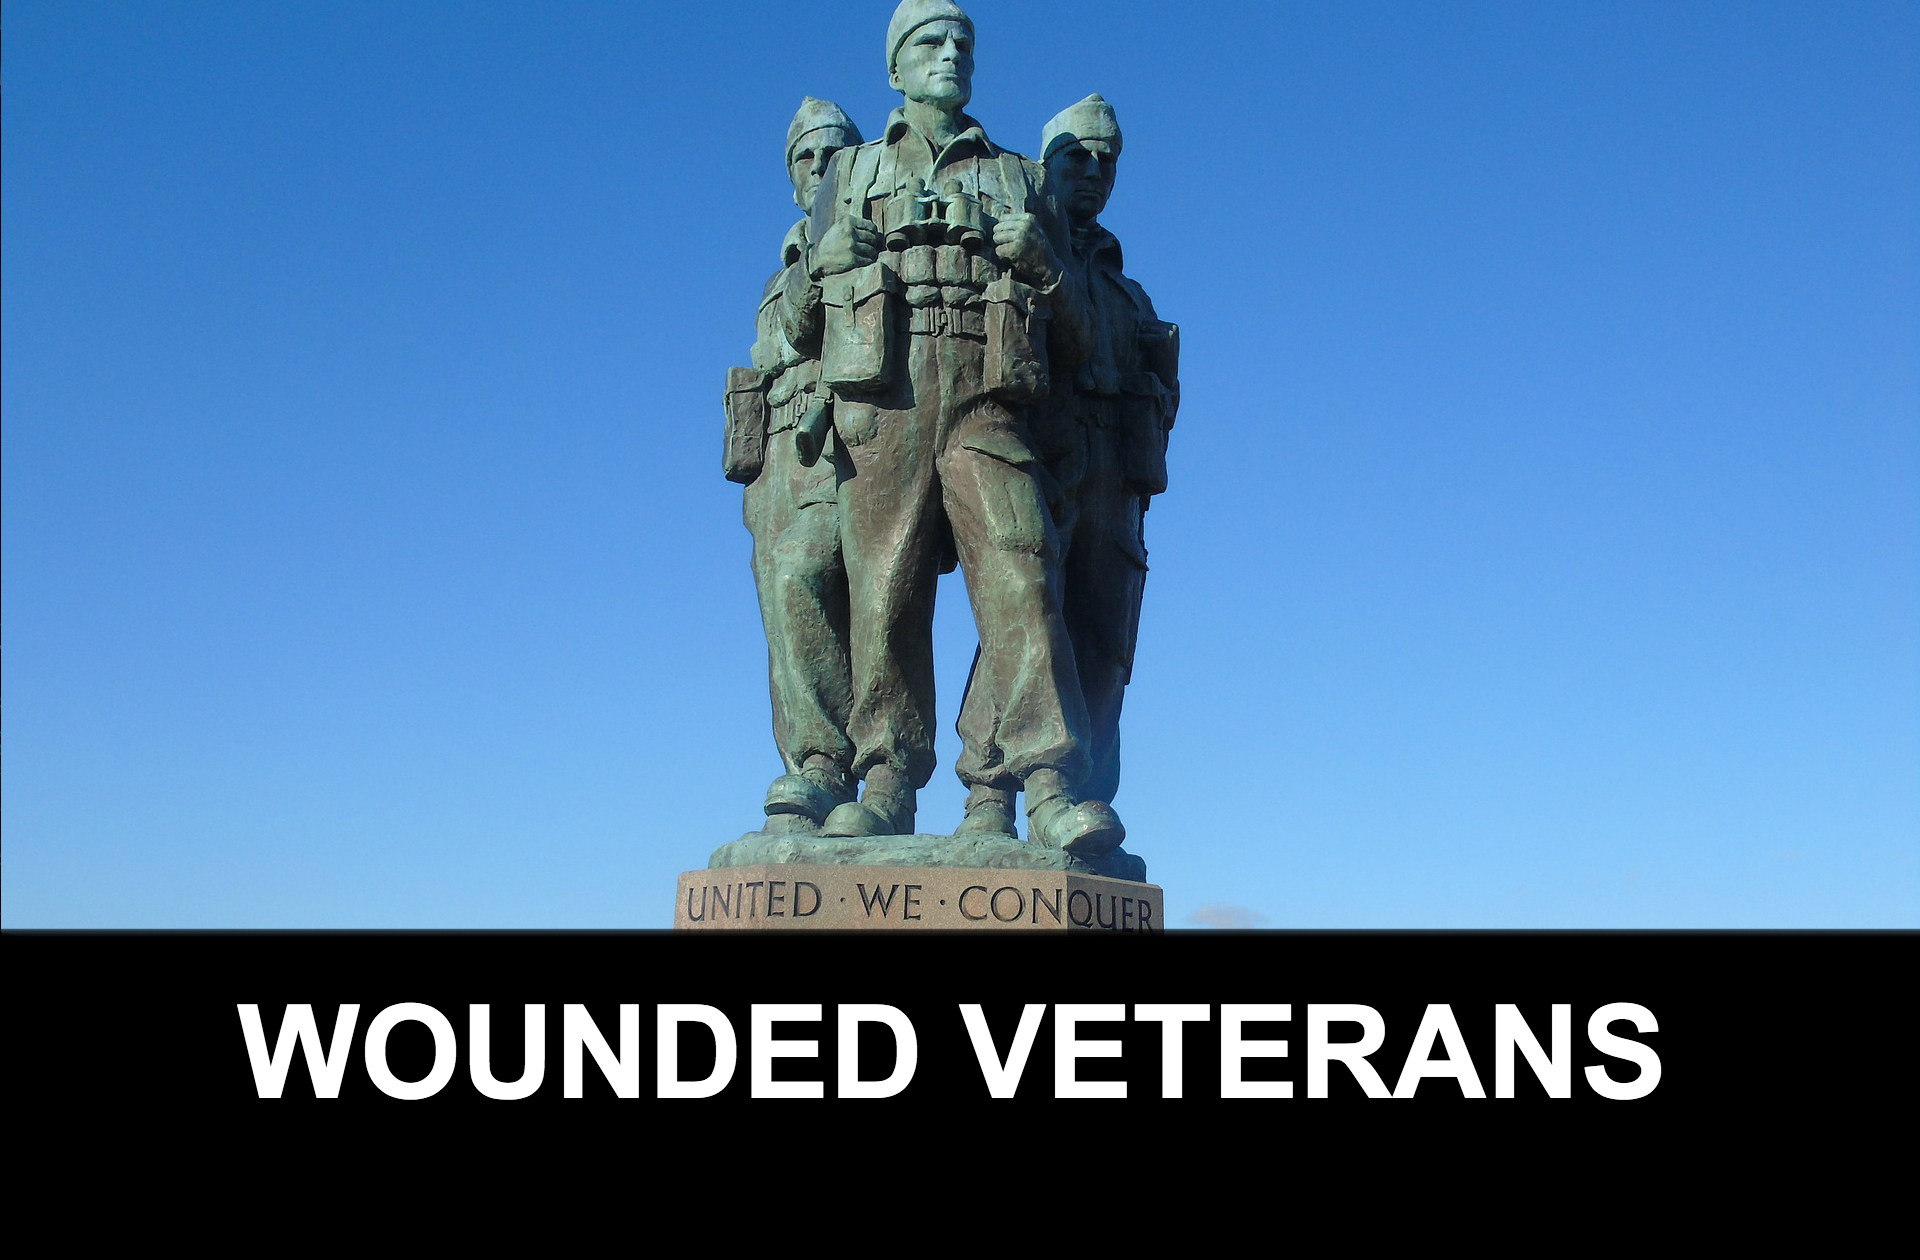 WOUNDED VETERANS